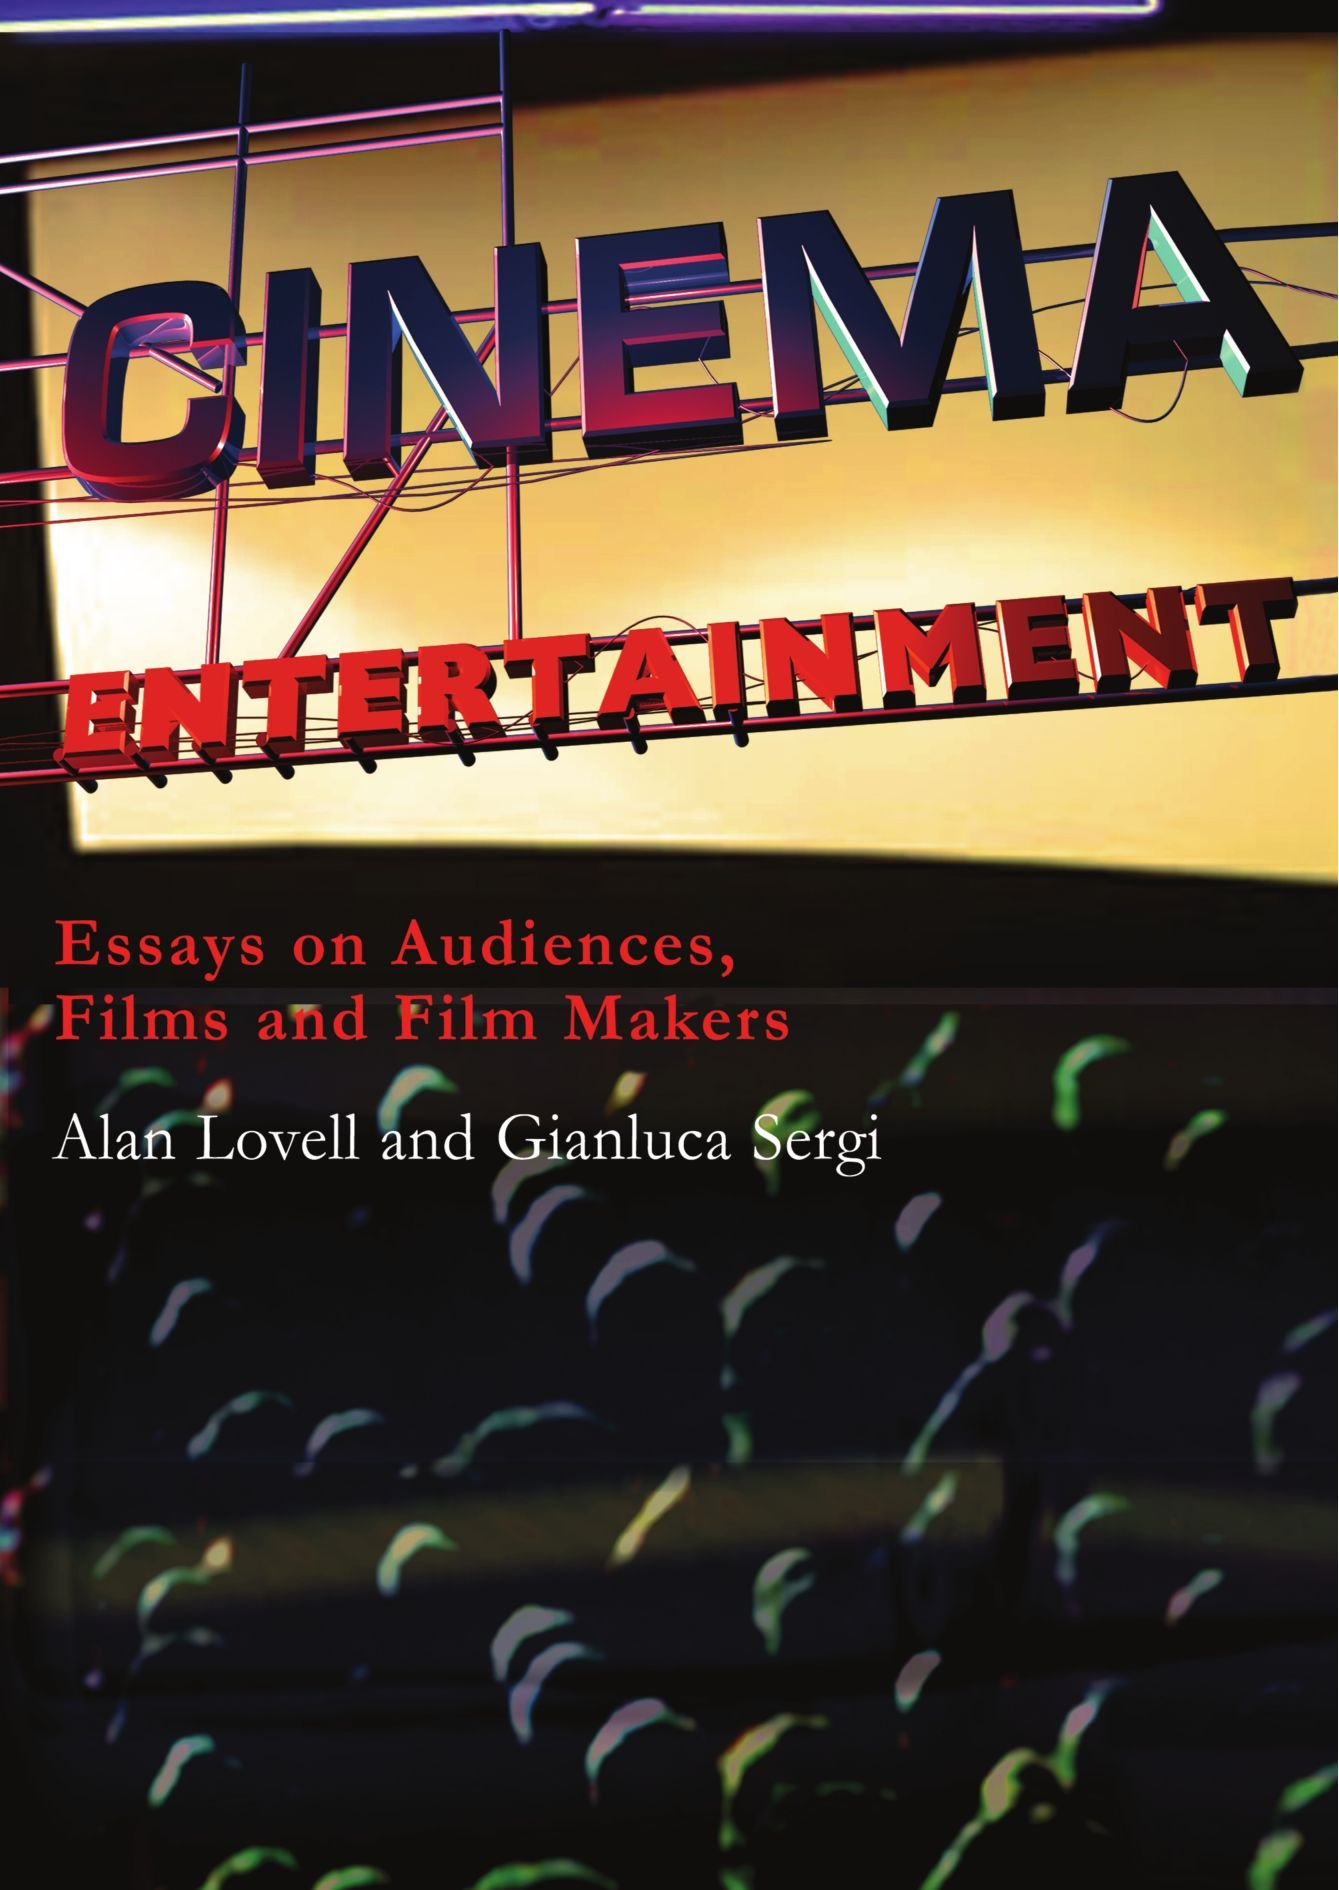 cinema entertainment essays on audiences films and film makers cinema entertainment essays on audiences films and film makers uk higher education oup humanities social sciences media film cultural studies